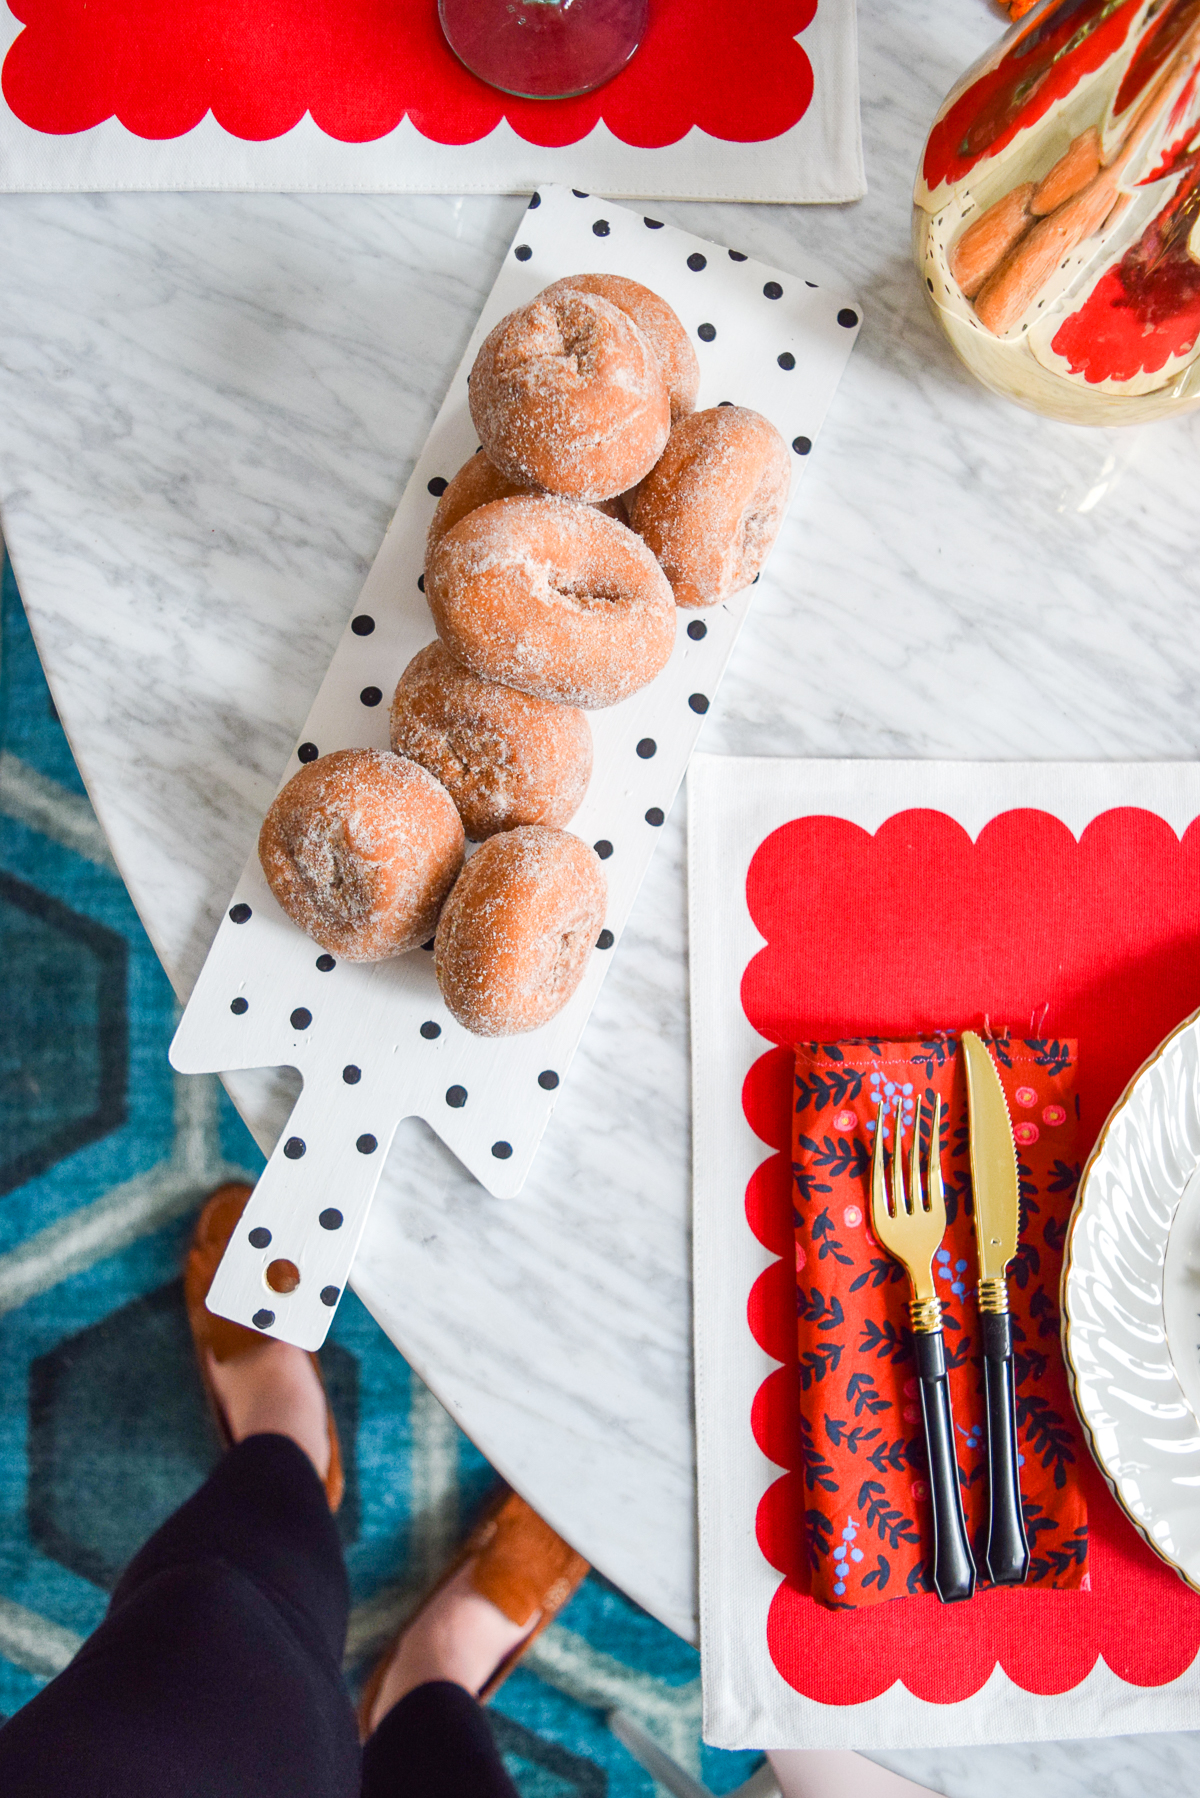 donuts on a black and white polka dot tray